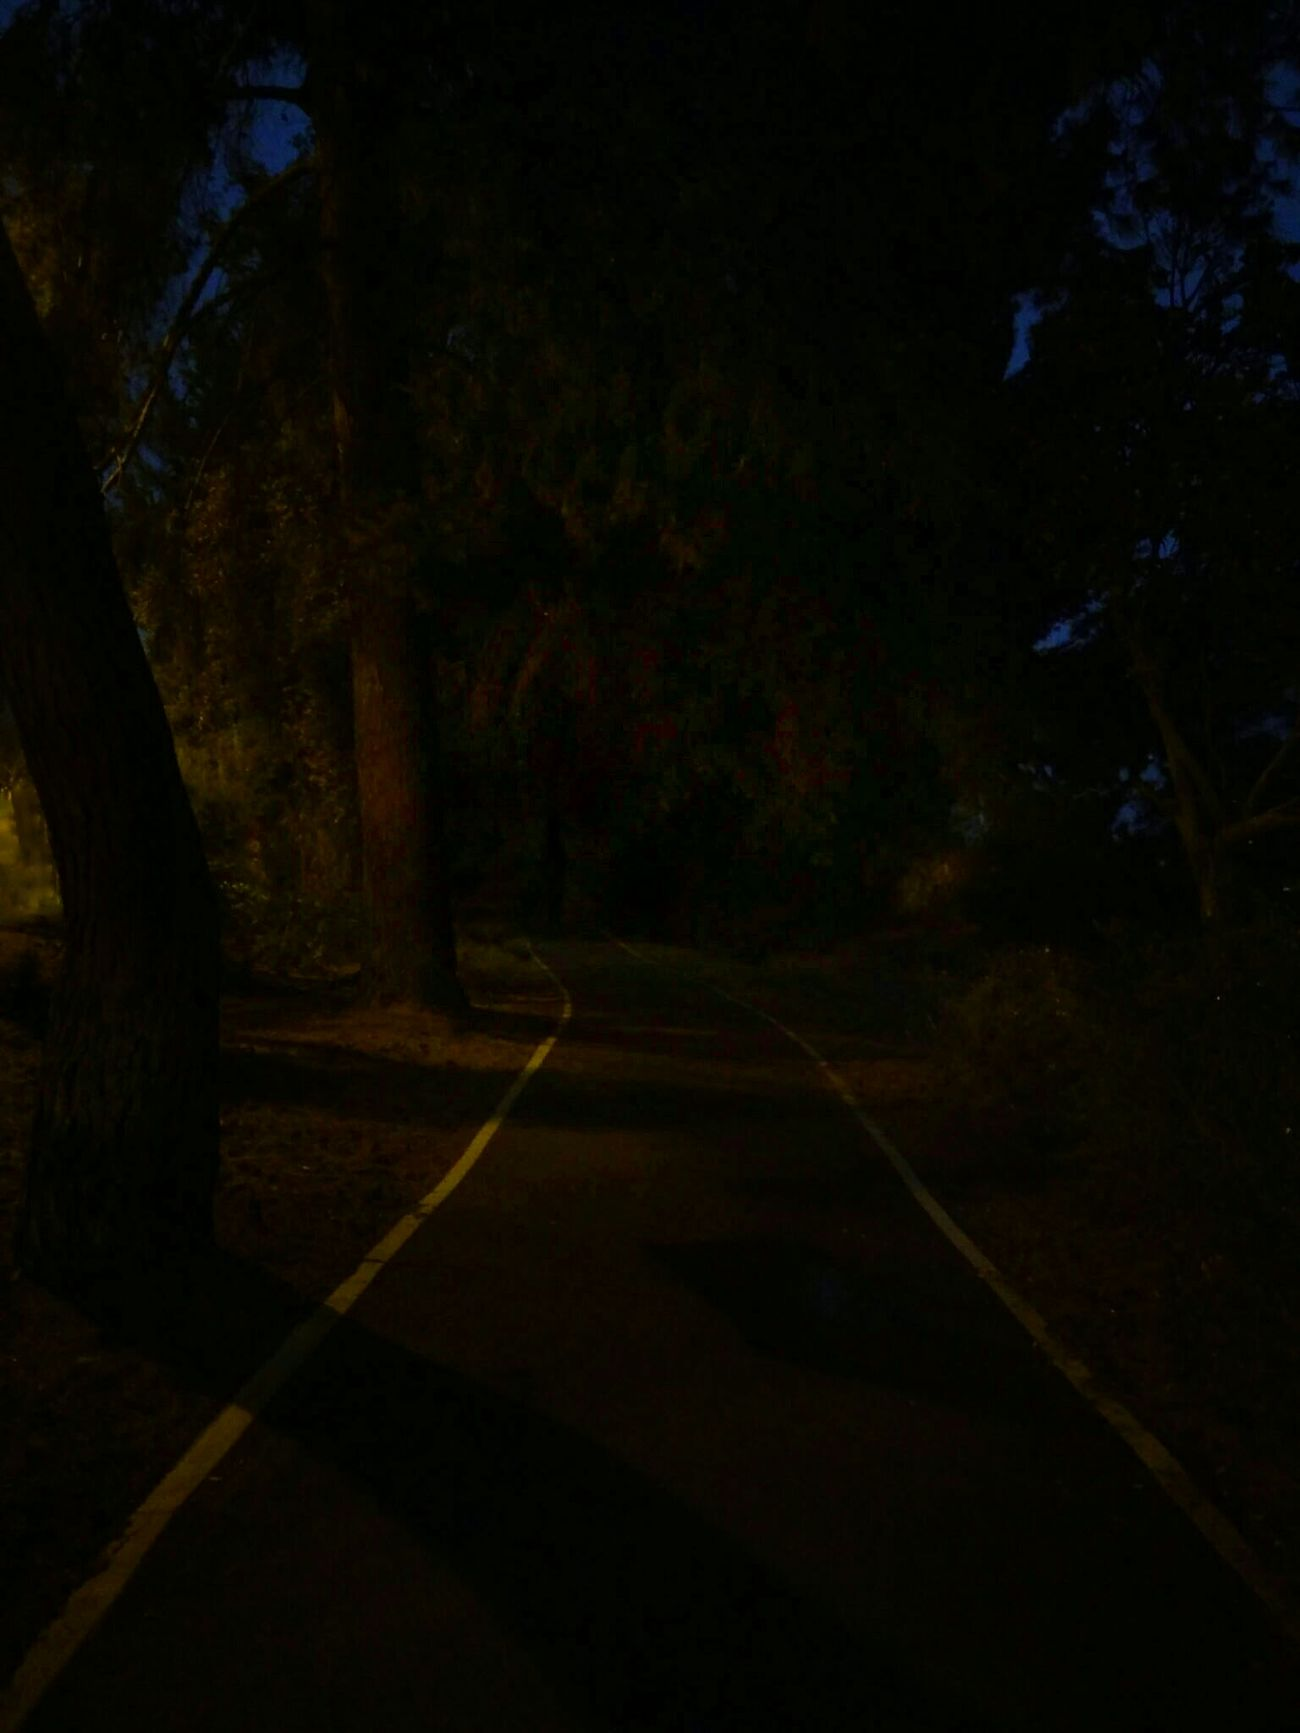 Enough flowers and jellybeans for now. Back into the darkness. Dark Path Nightcall Nightwalk Nocturne Shadow Darkness And Light Darkart Night Photography Nightphotography Nightscape Pathway Pathway, Where Will Your Foot Steps Take You? Pathway In The Forest Nighttime Darkness Dark And Light Dark Fairytale Wooded Area Woodscapes Dark Trees Mysterious Mysterious Place Dark Place Creepy Creepy Nature Shots